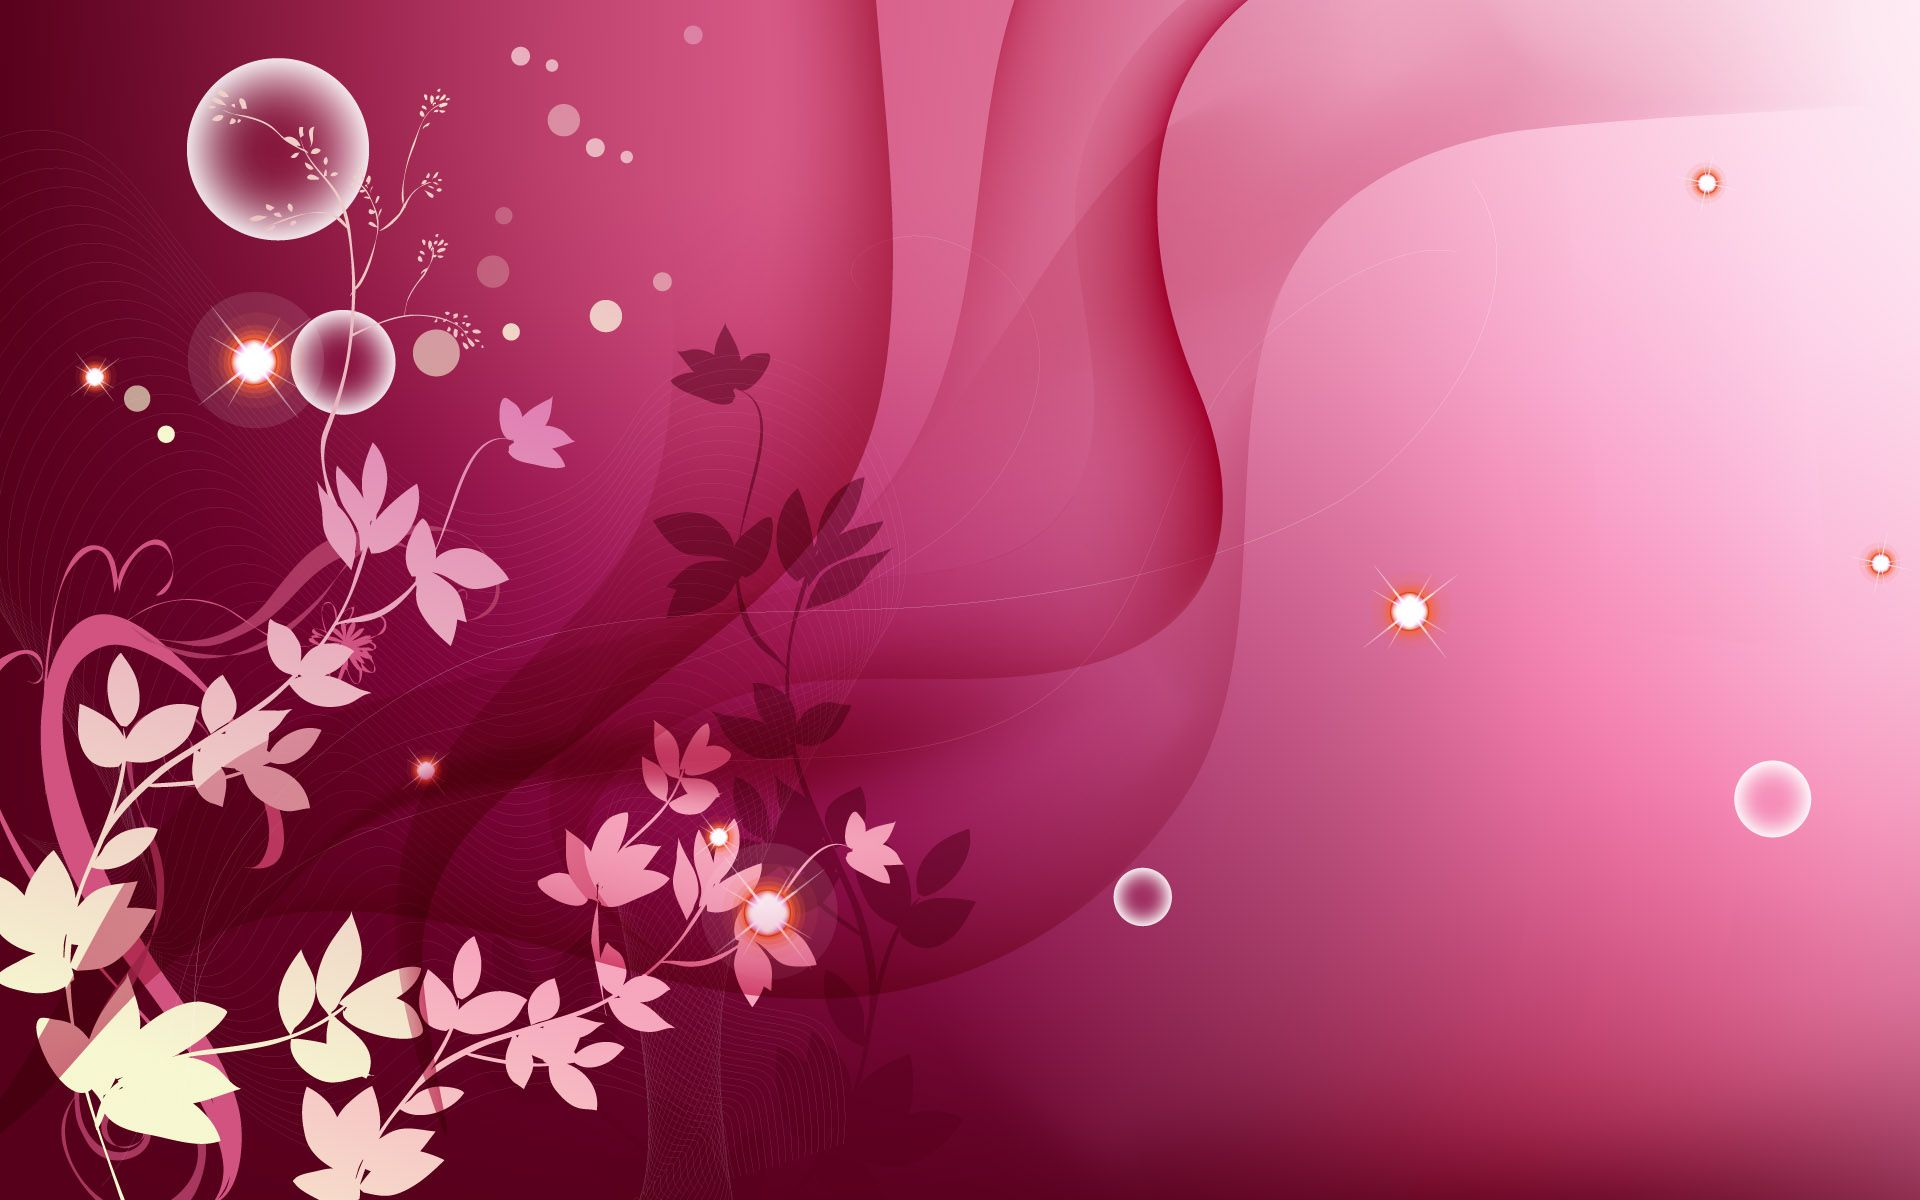 new wallpaper added at background wallpapers pink style floral wallpaper